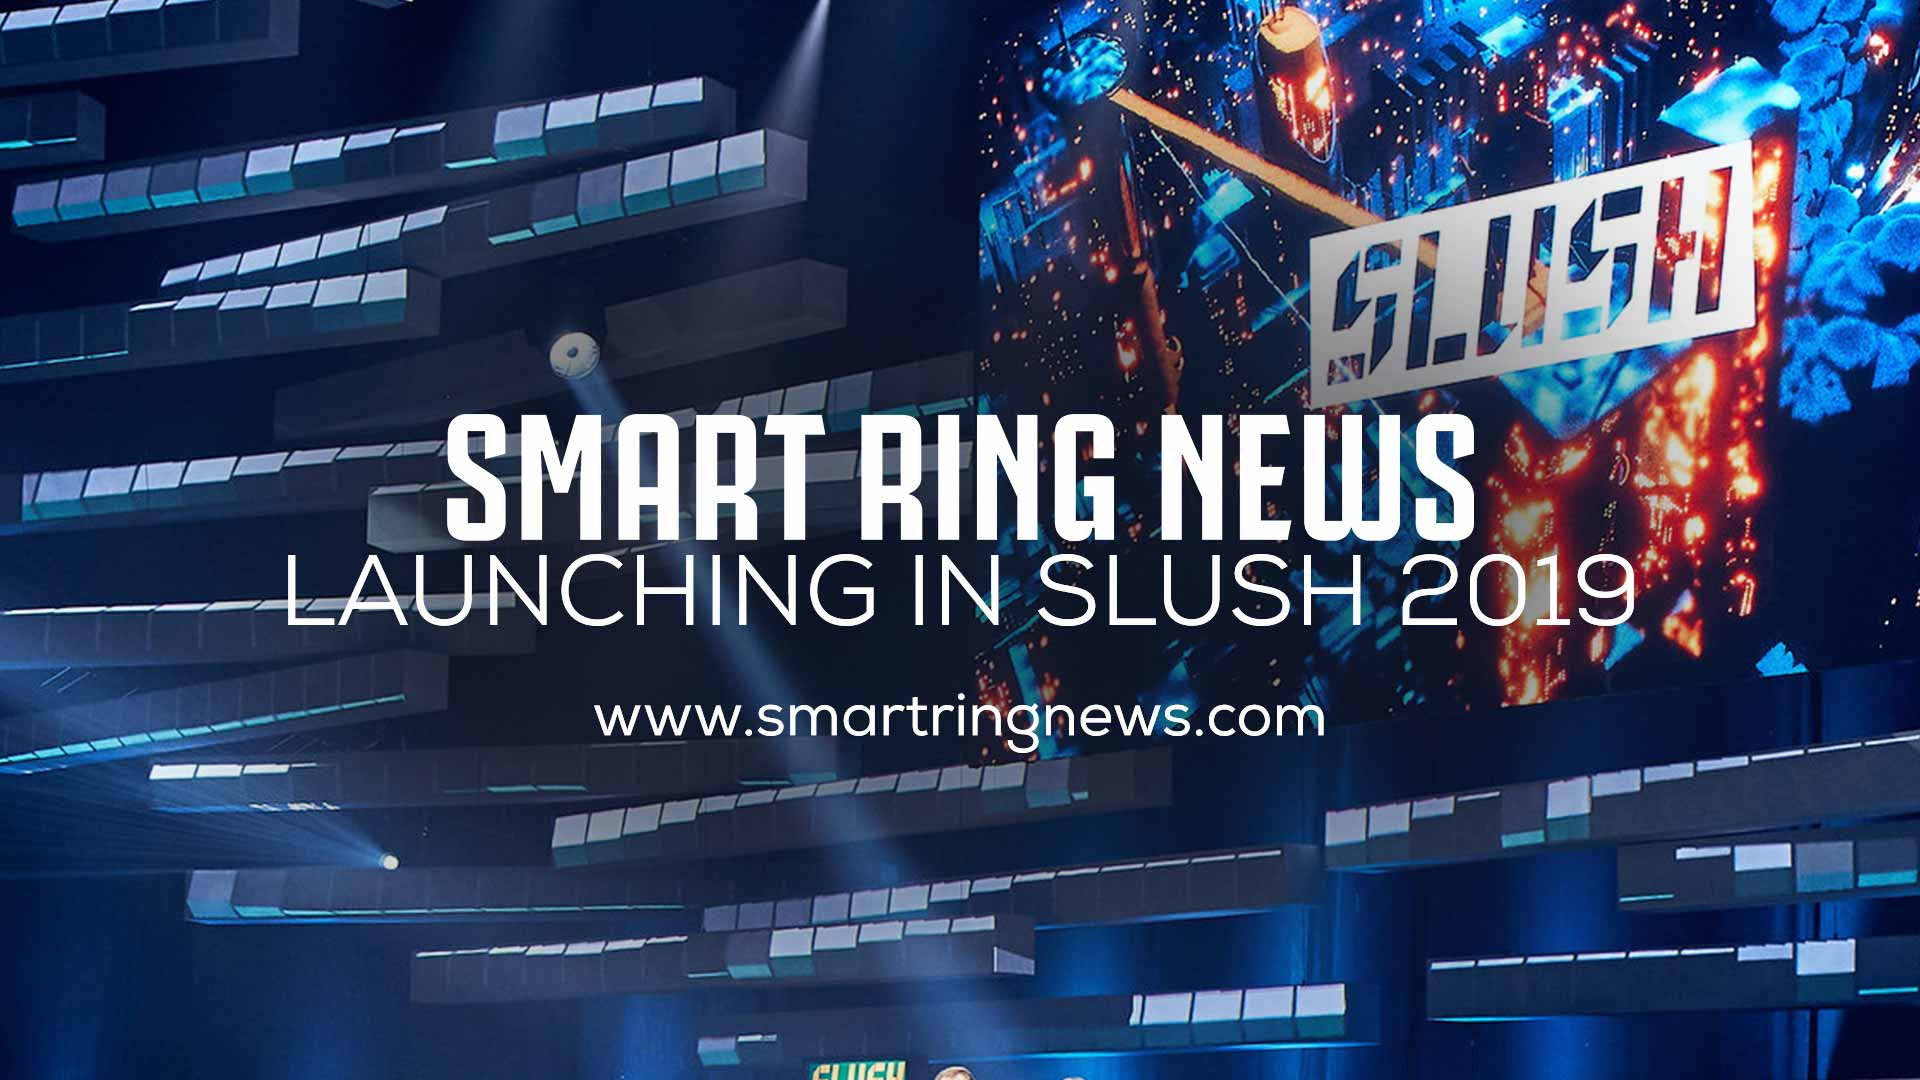 Smart Ring News - The First Media Dedicated Solely to Smart Rings